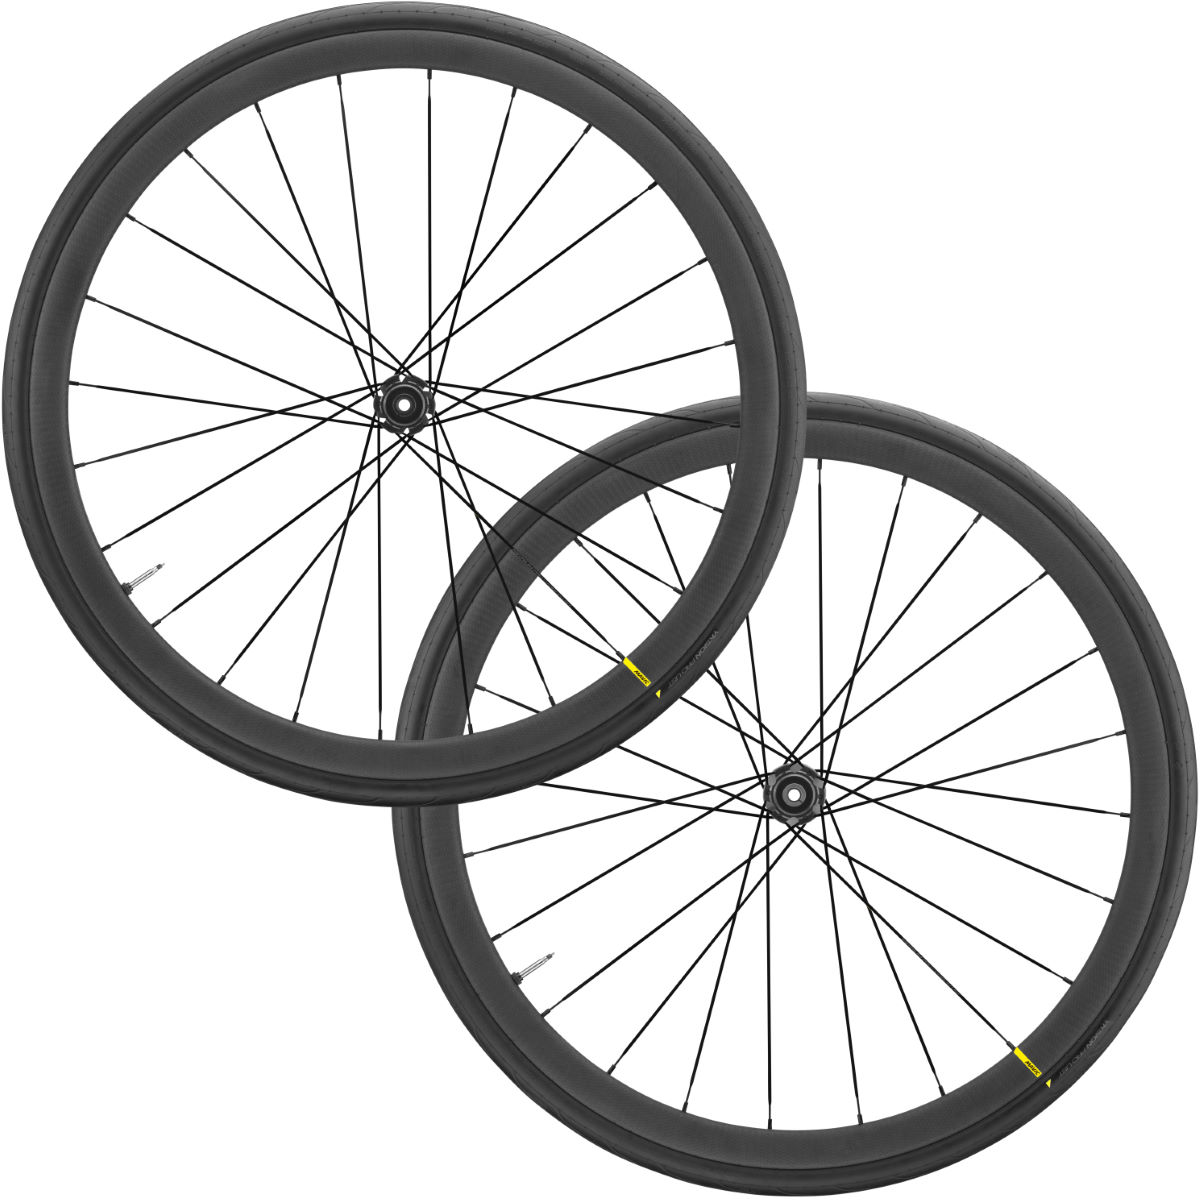 Mavic Ksyrium Pro Carbon UST Disc Wheelset (WTS) - Wheel sets